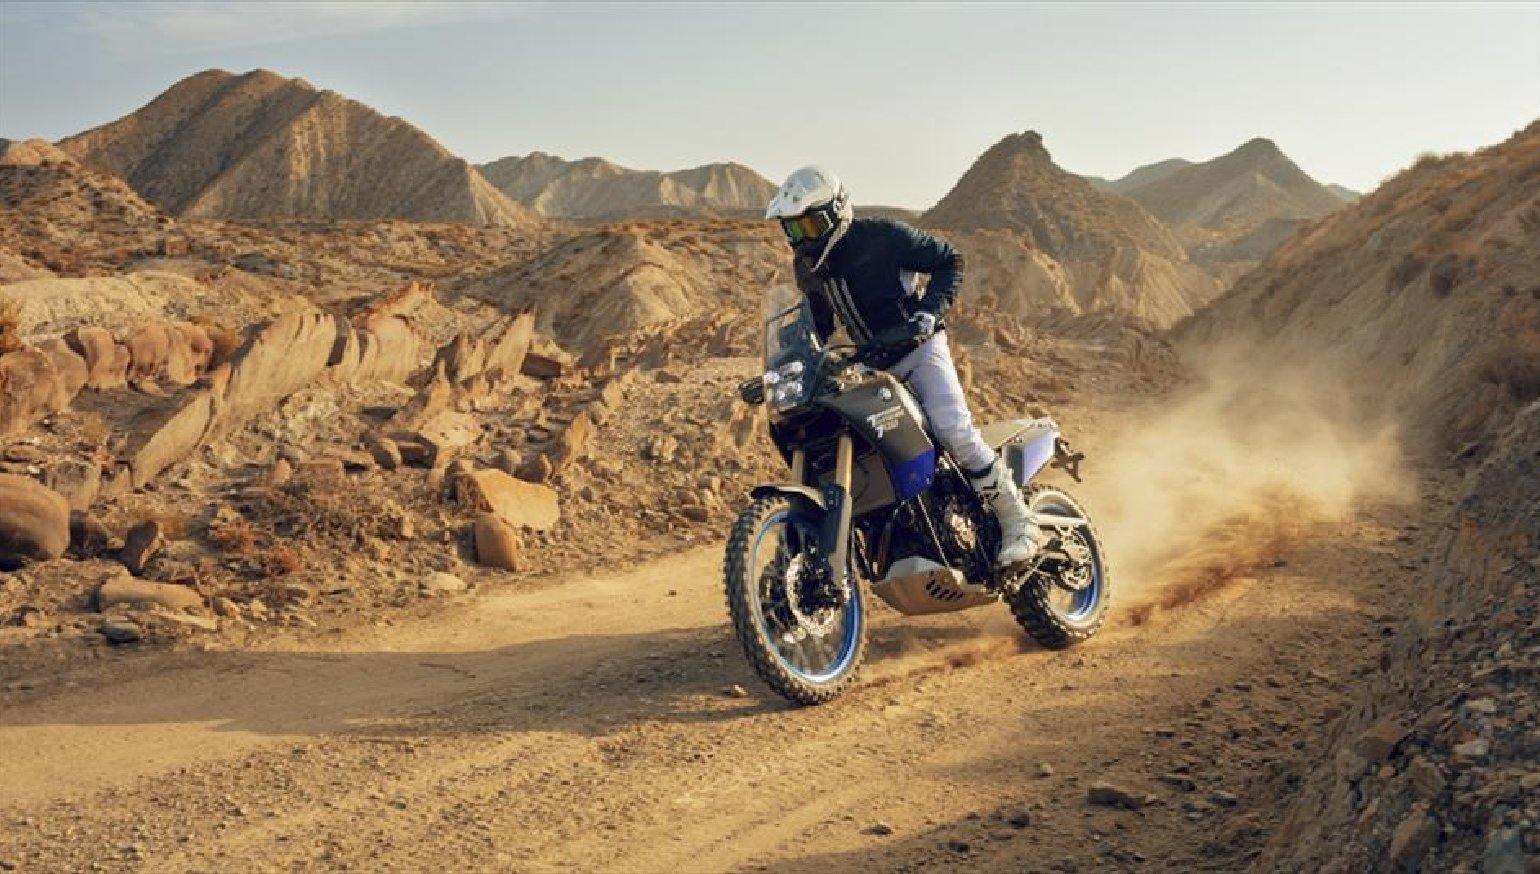 The long race to the middle: KTM's 790 Adventure R vs